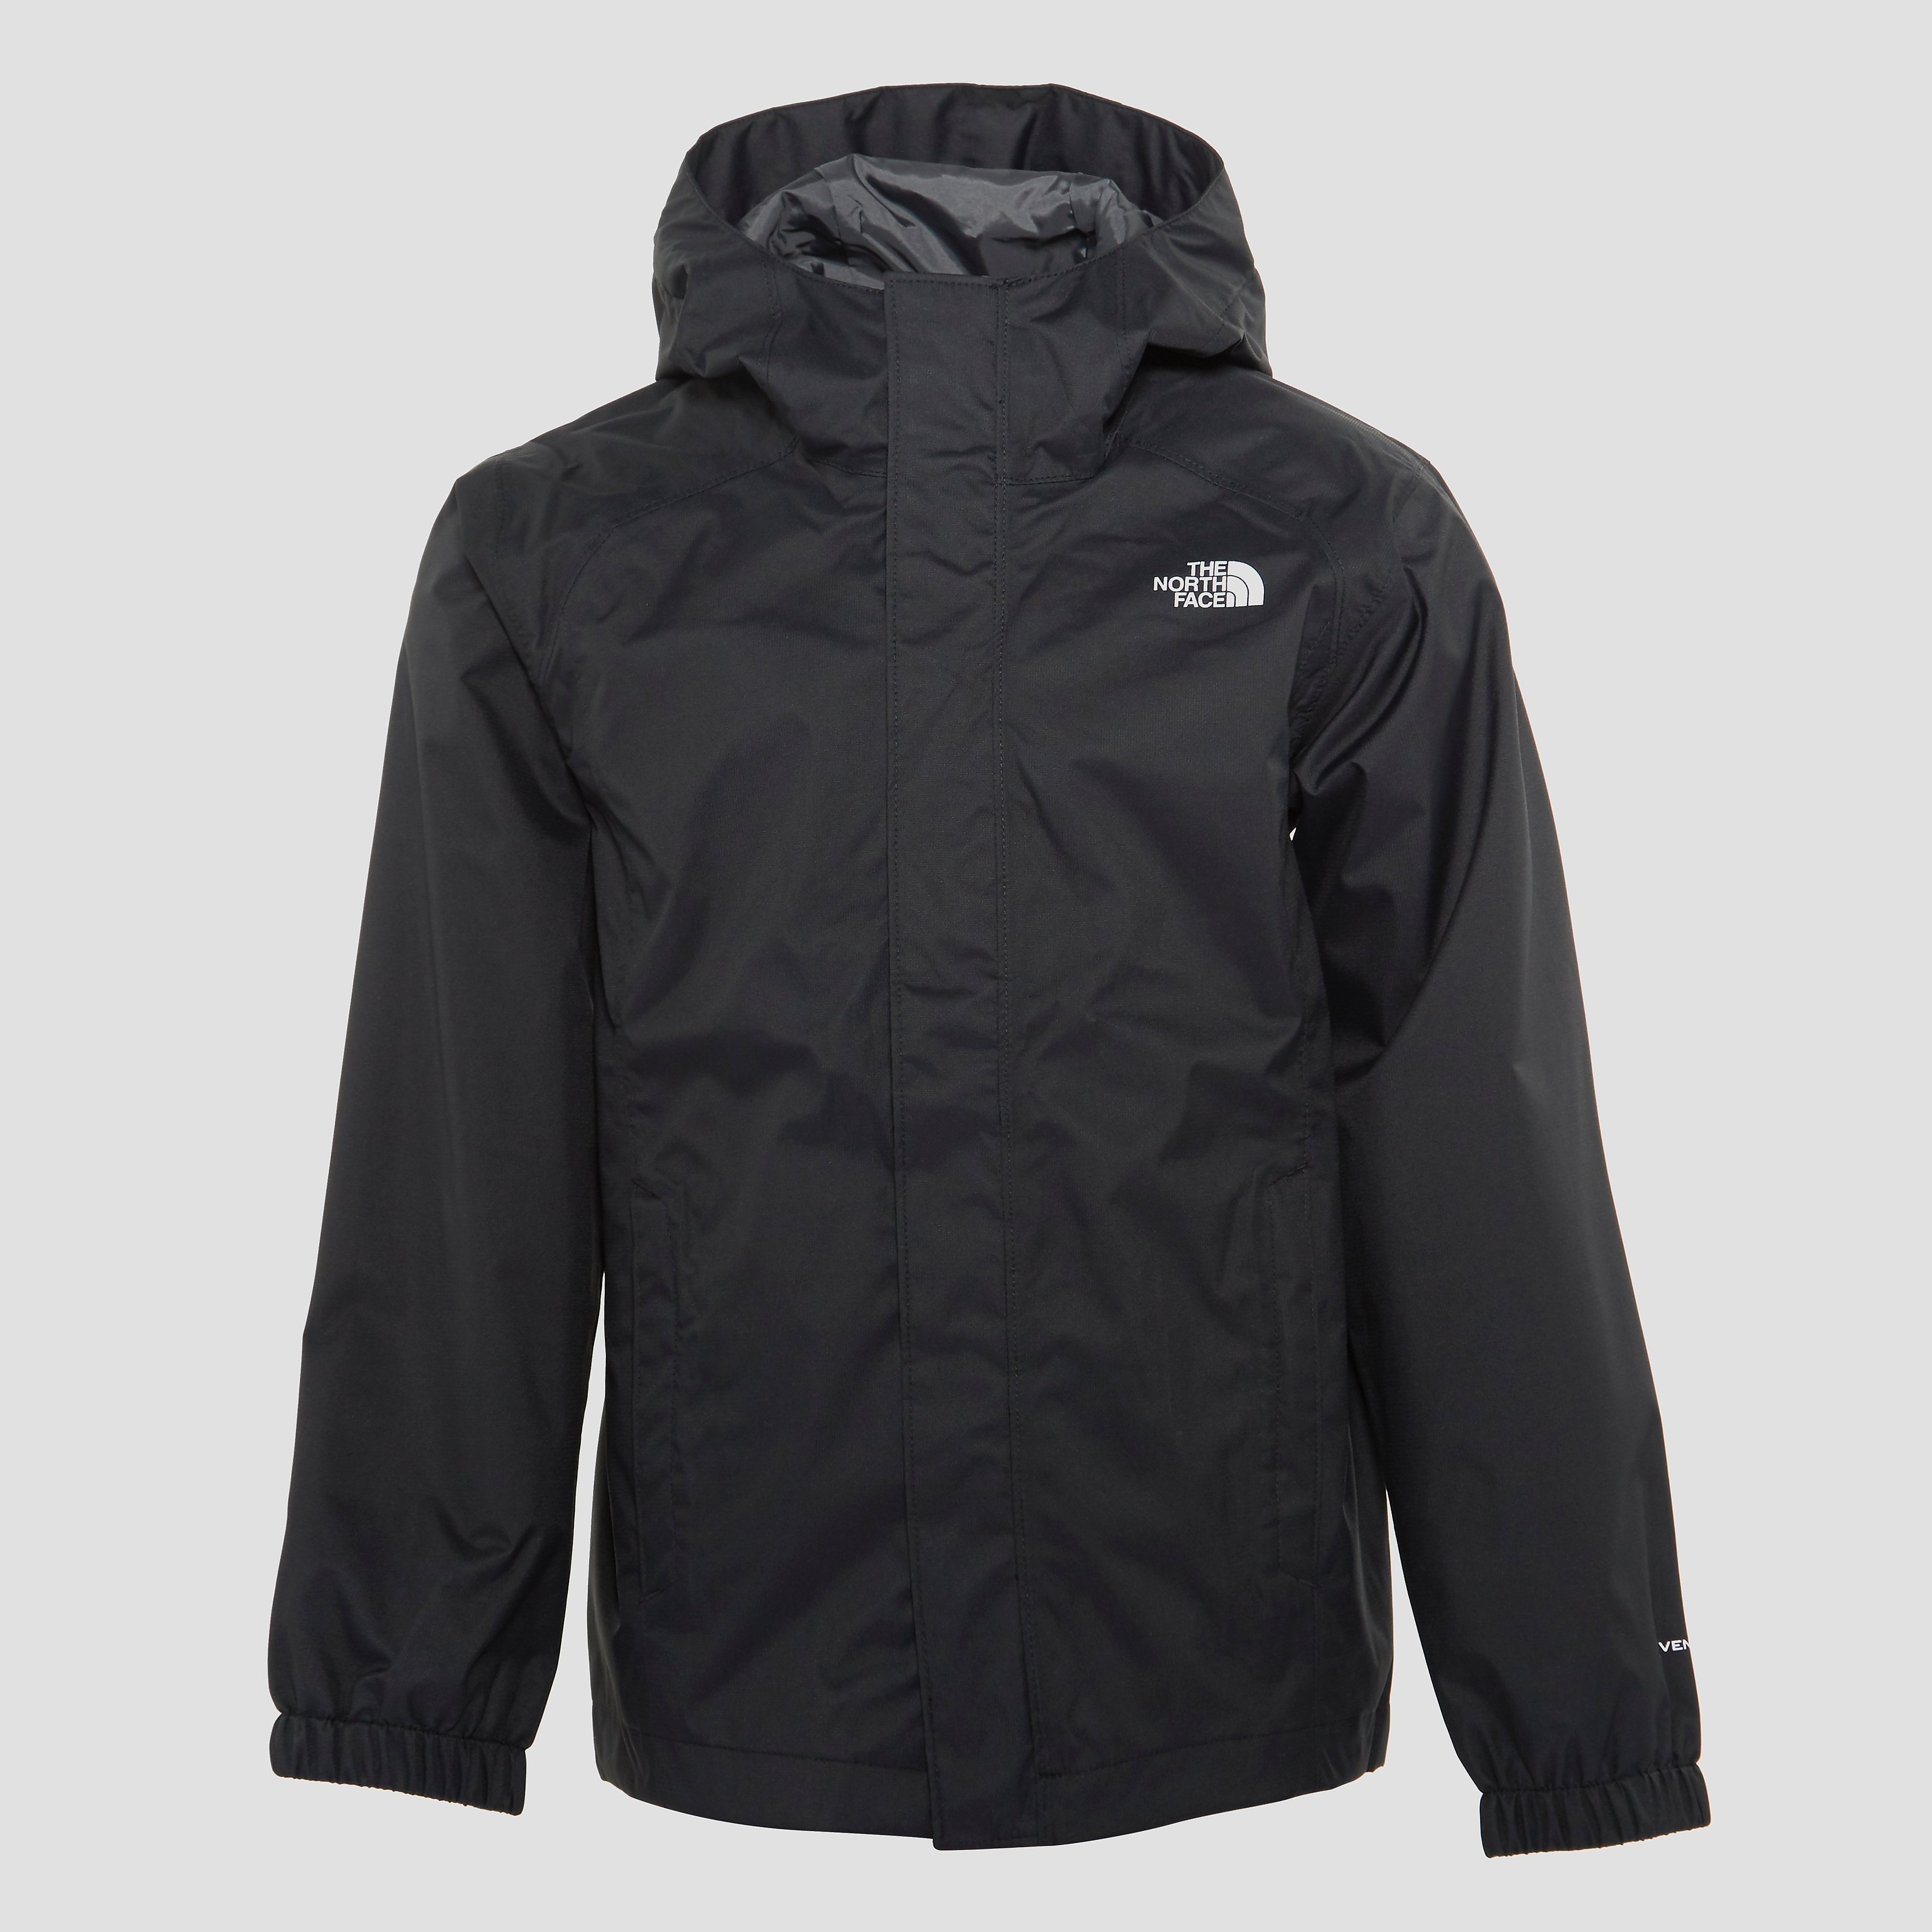 THE NORTH FACE RESOLVE REFLECTIVE JACKET JR